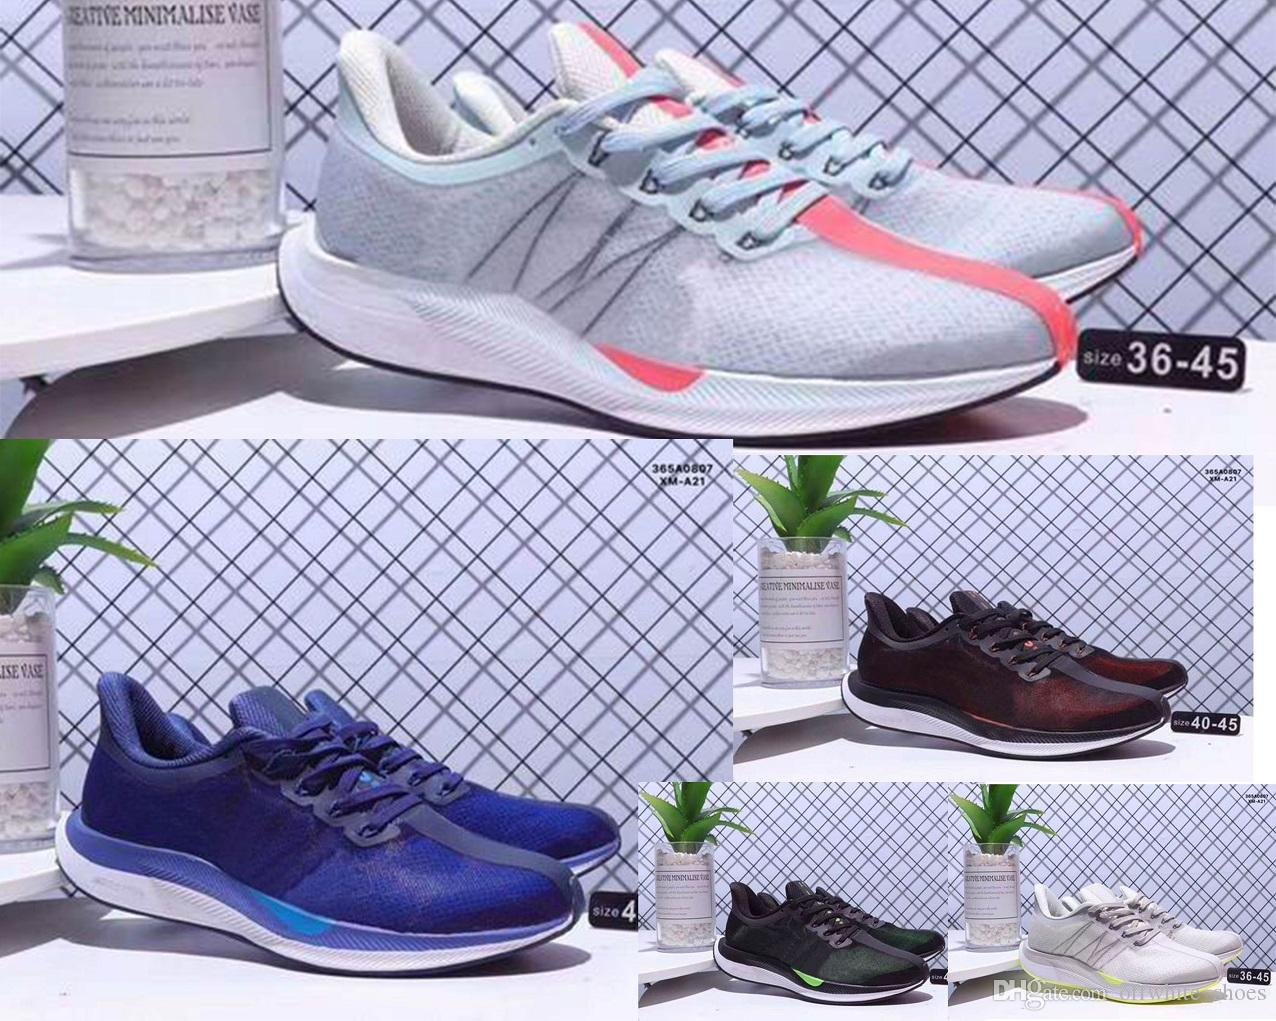 7acd6d62f8d8 Hot Sale New Wmns Zoom Lunar Landing 35 Breathable Net Gauze Running  Sneakers React Zoom X Vaporfly Pegasus 35 Turbo EVA Cushioning Sneakers  Sperry Shoes ...